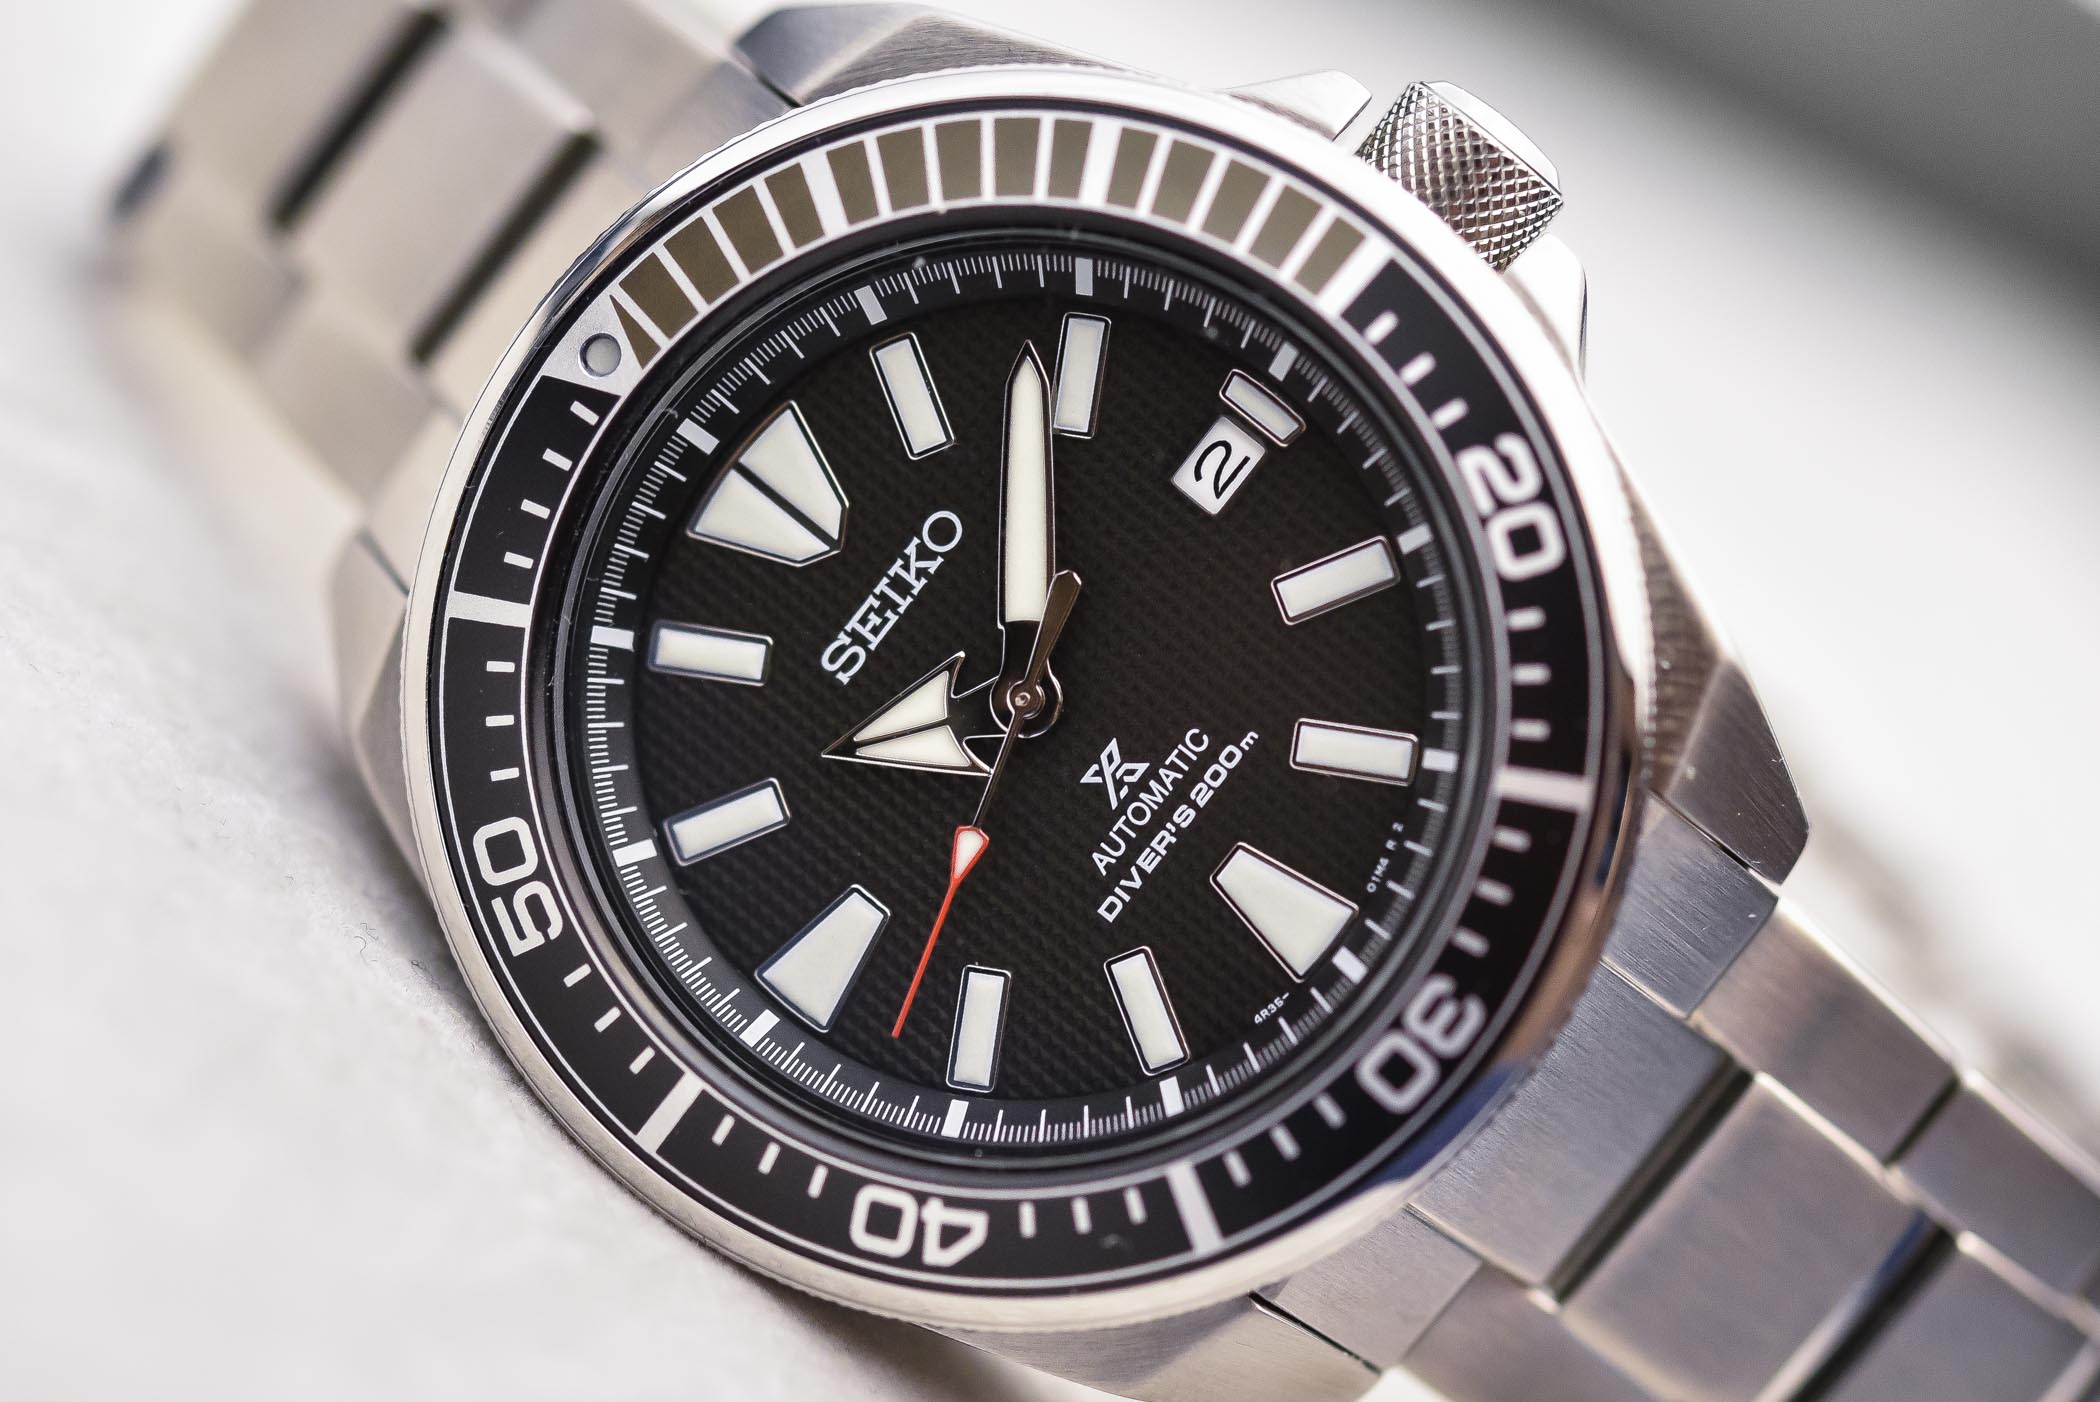 Seiko Shogun Google Search T Prospex Sbdc029j Titanium Or Get A 4r3x Watch The Inflated Prices For 6r15 Are Not Worth It Imho Unless You Can One Under 600 Zimbe Spb057j